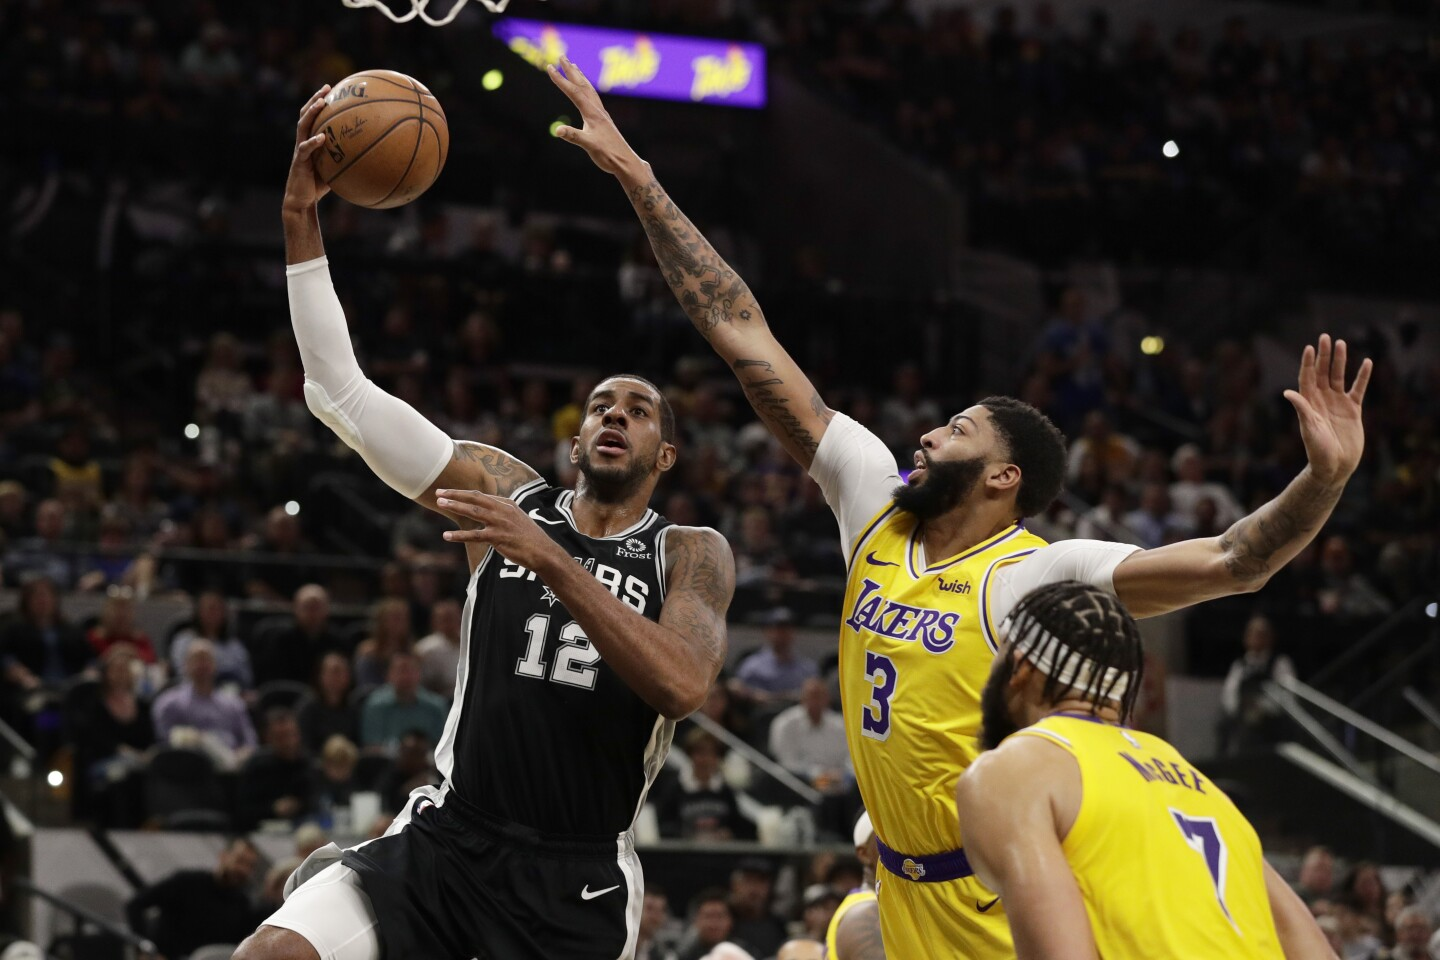 San Antonio Spurs center LaMarcus Aldridge (12) shoots past Los Angeles Lakers forward Anthony Davis (3) during the first half of an NBA basketball game, in San Antonio, Monday, Nov. 25, 2019. (AP Photo/Eric Gay)